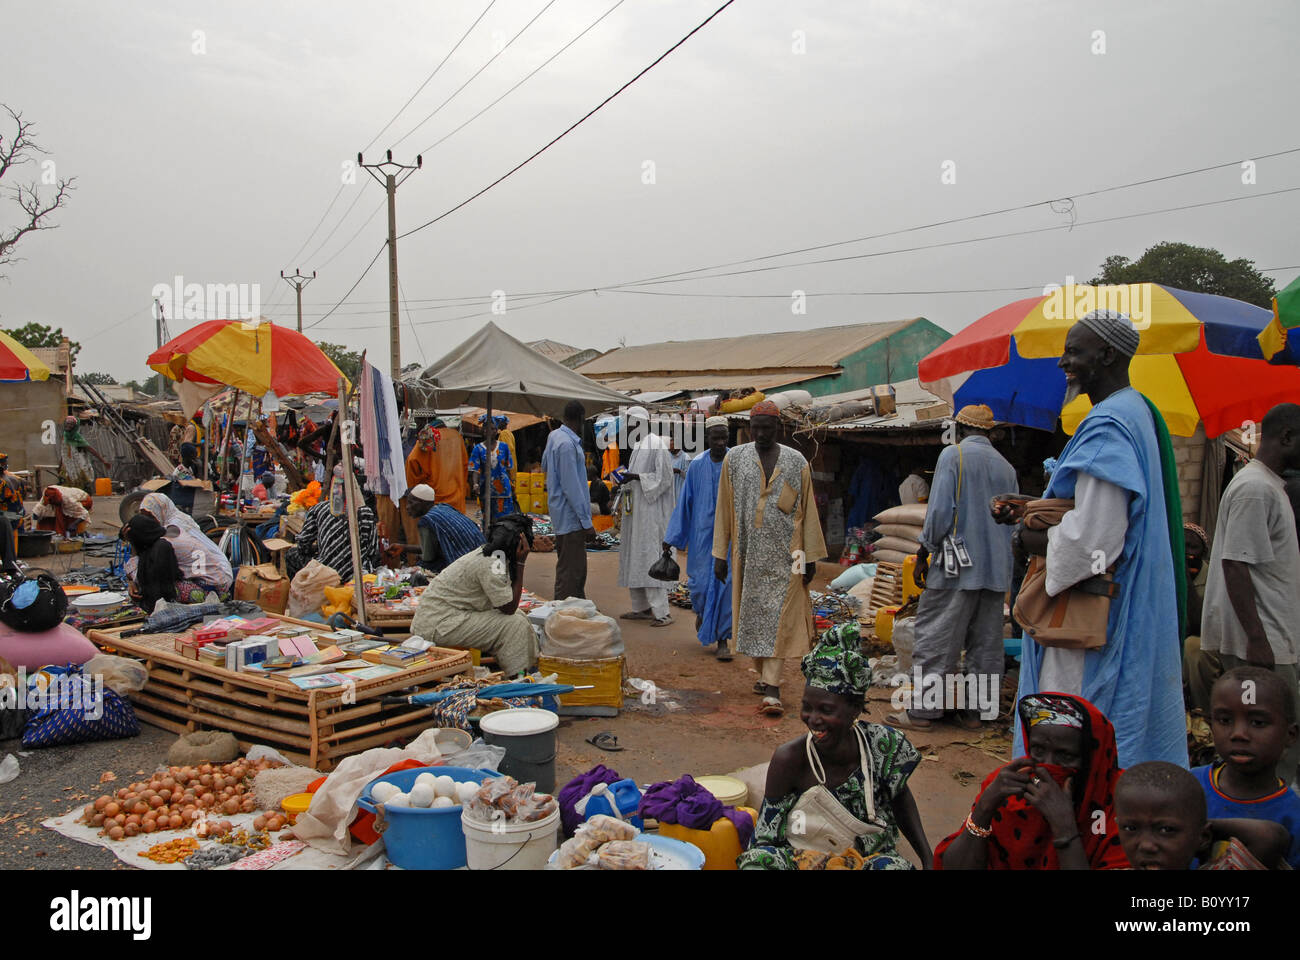 market day in a Gambian village - Stock Image